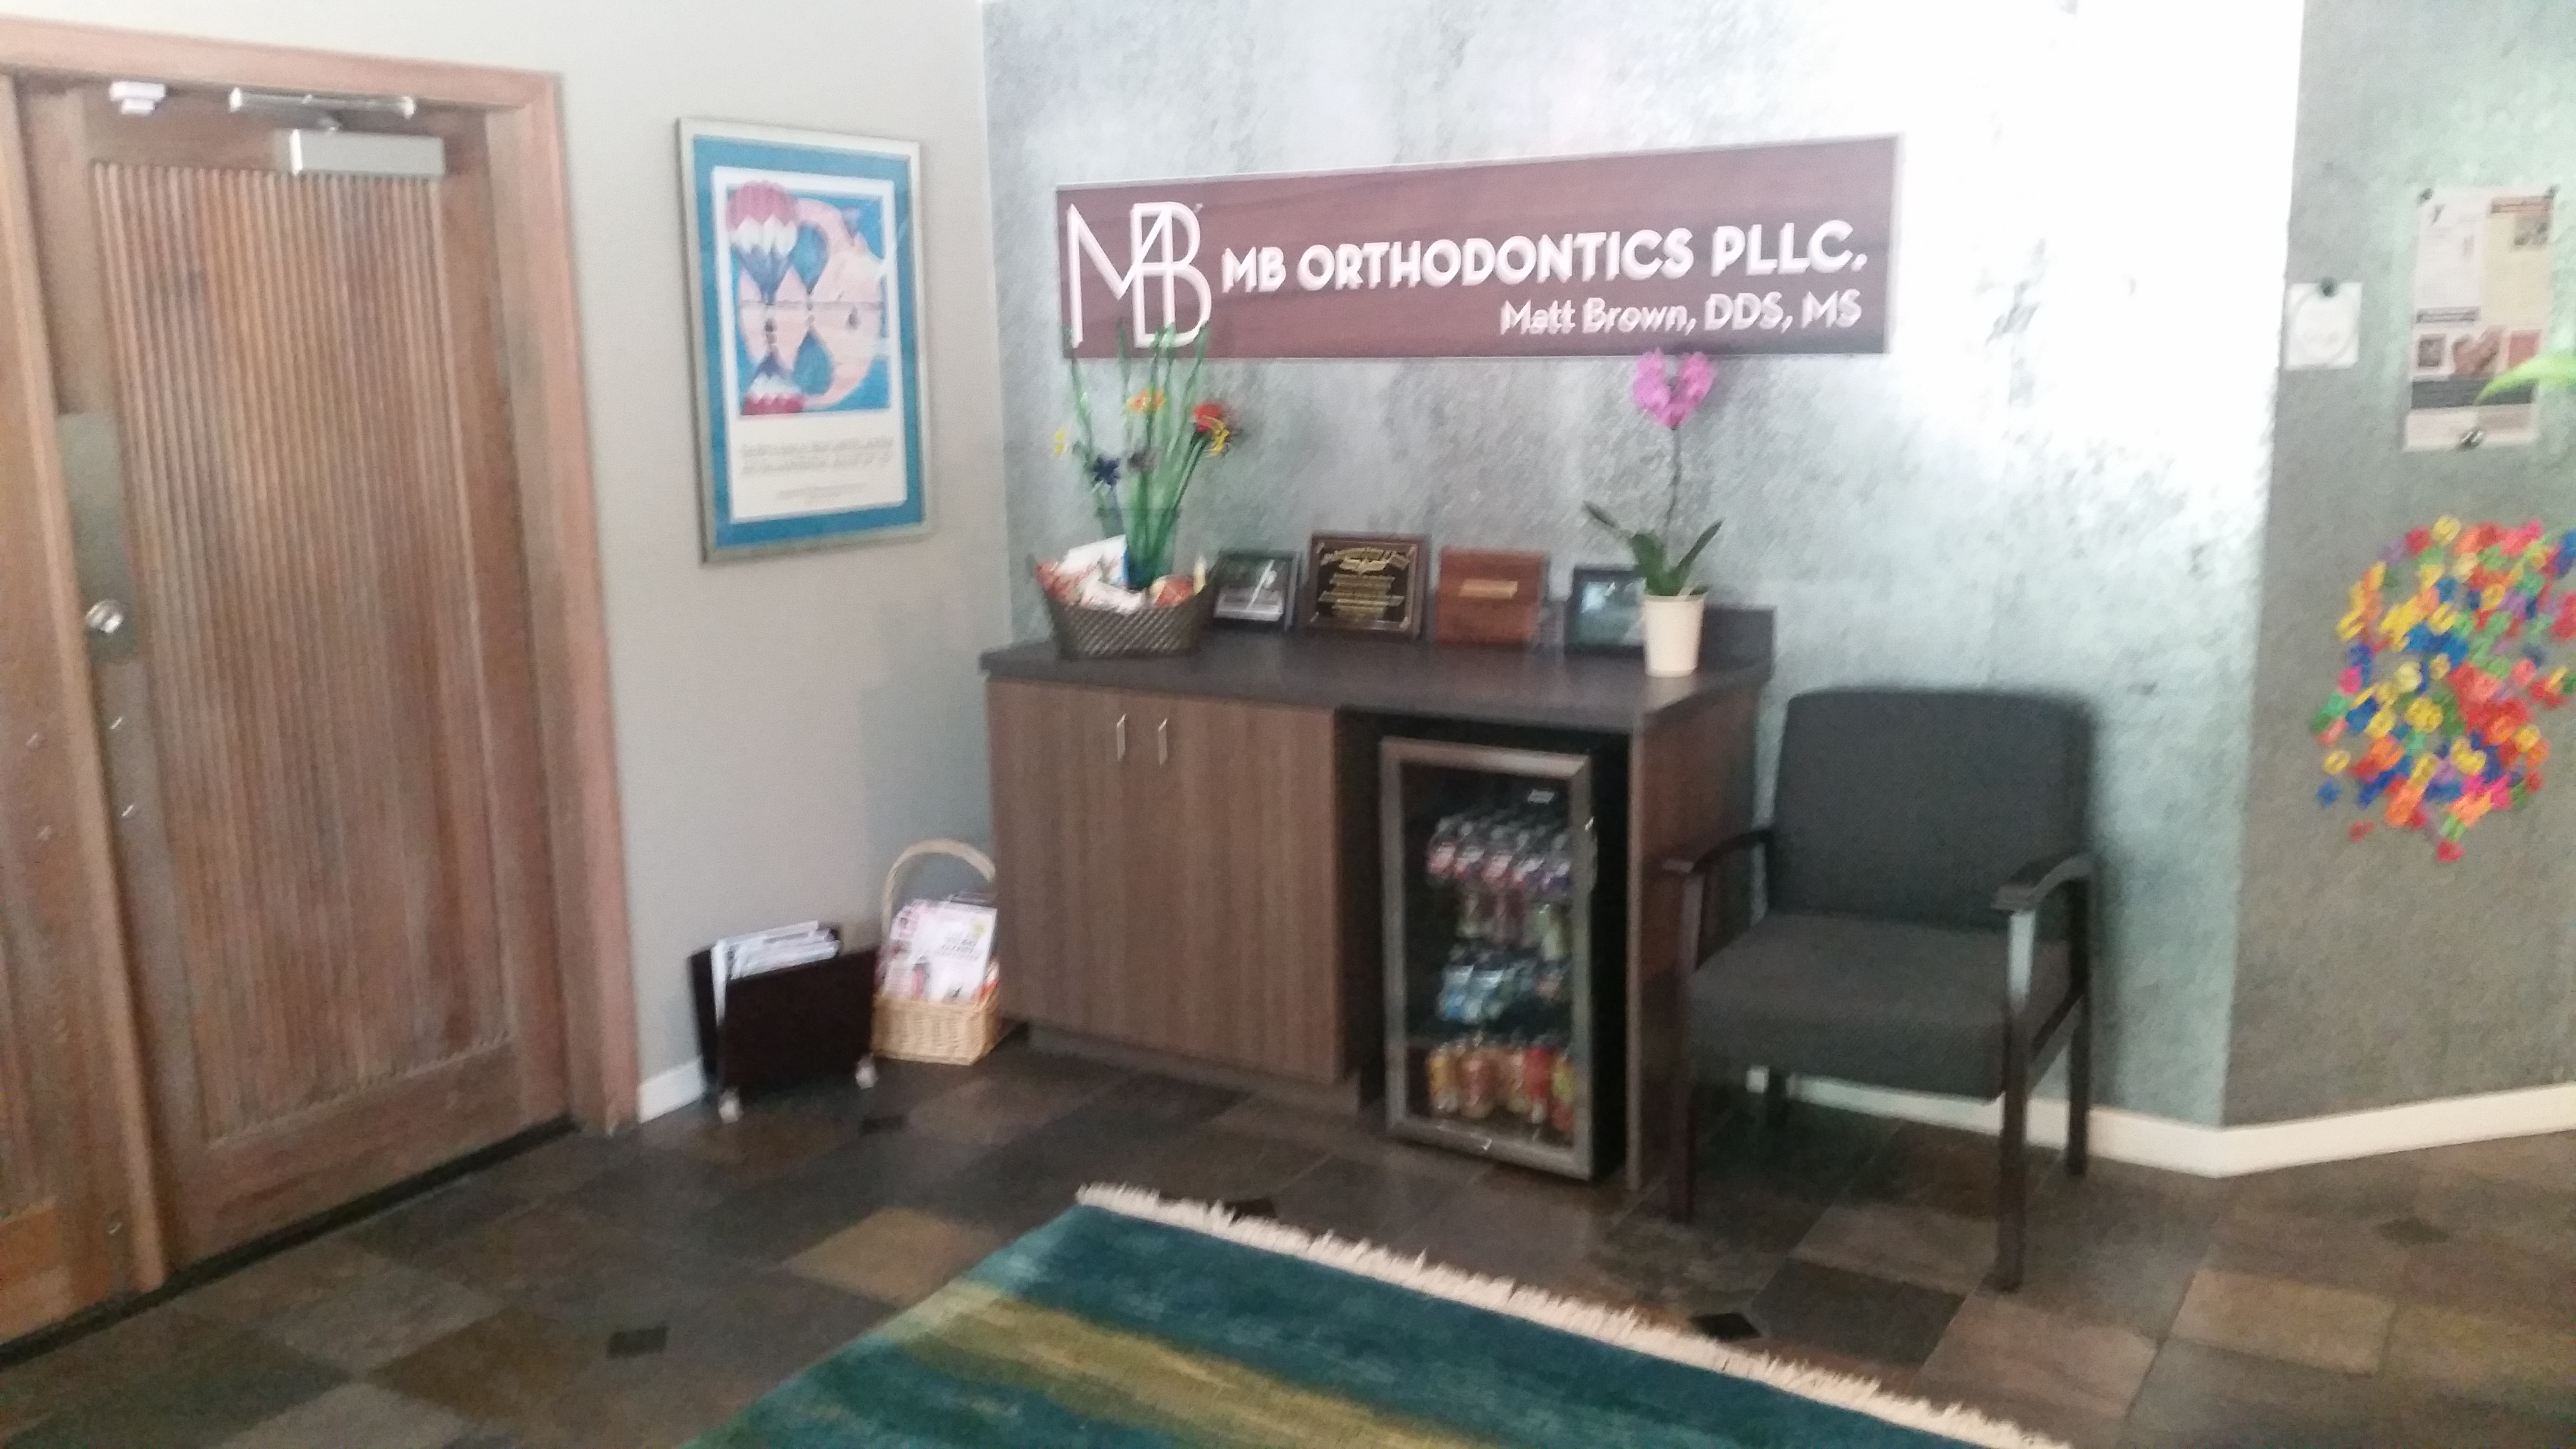 MB Orthodontics, PLLC image 3